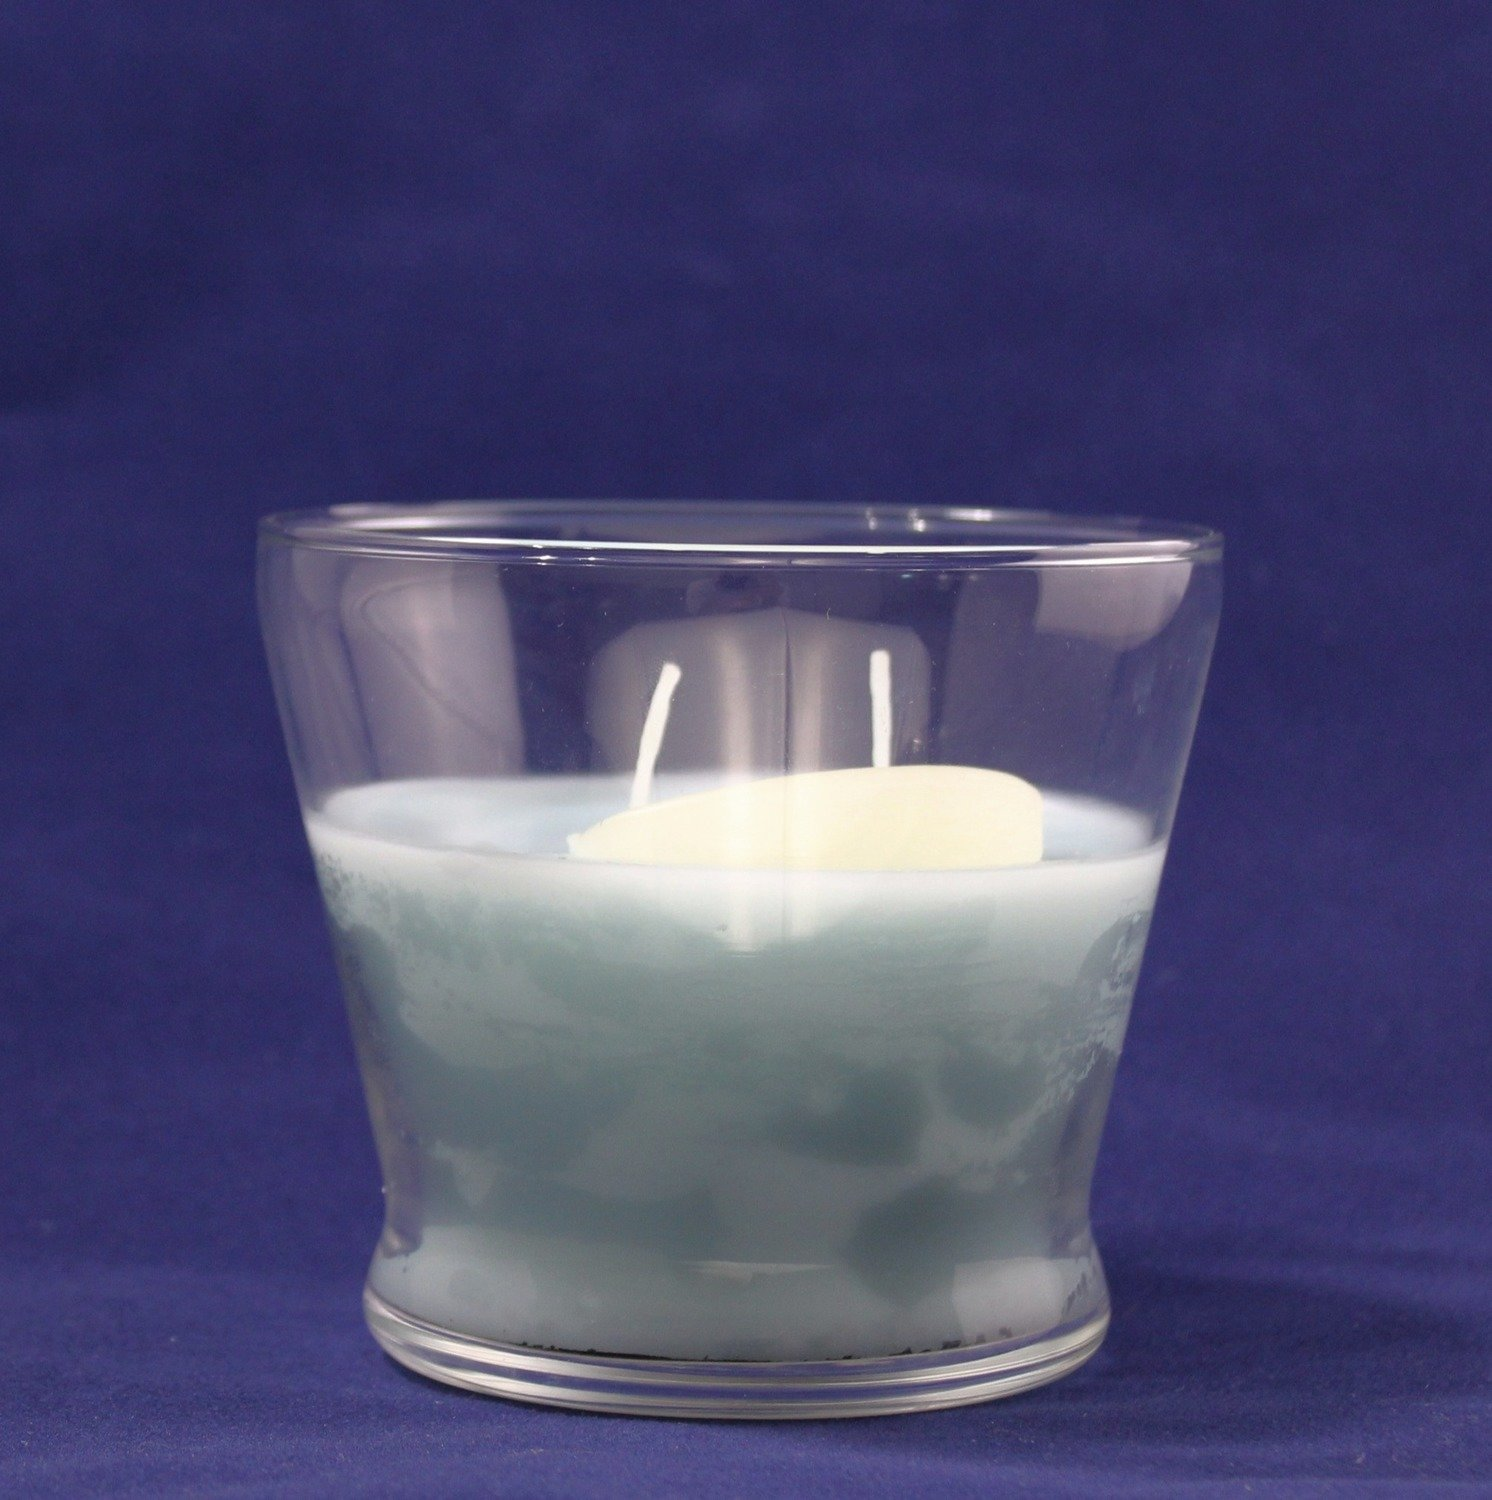 Black Cherry Scented Wax Candle In Flower Pot Glass - 2 wick